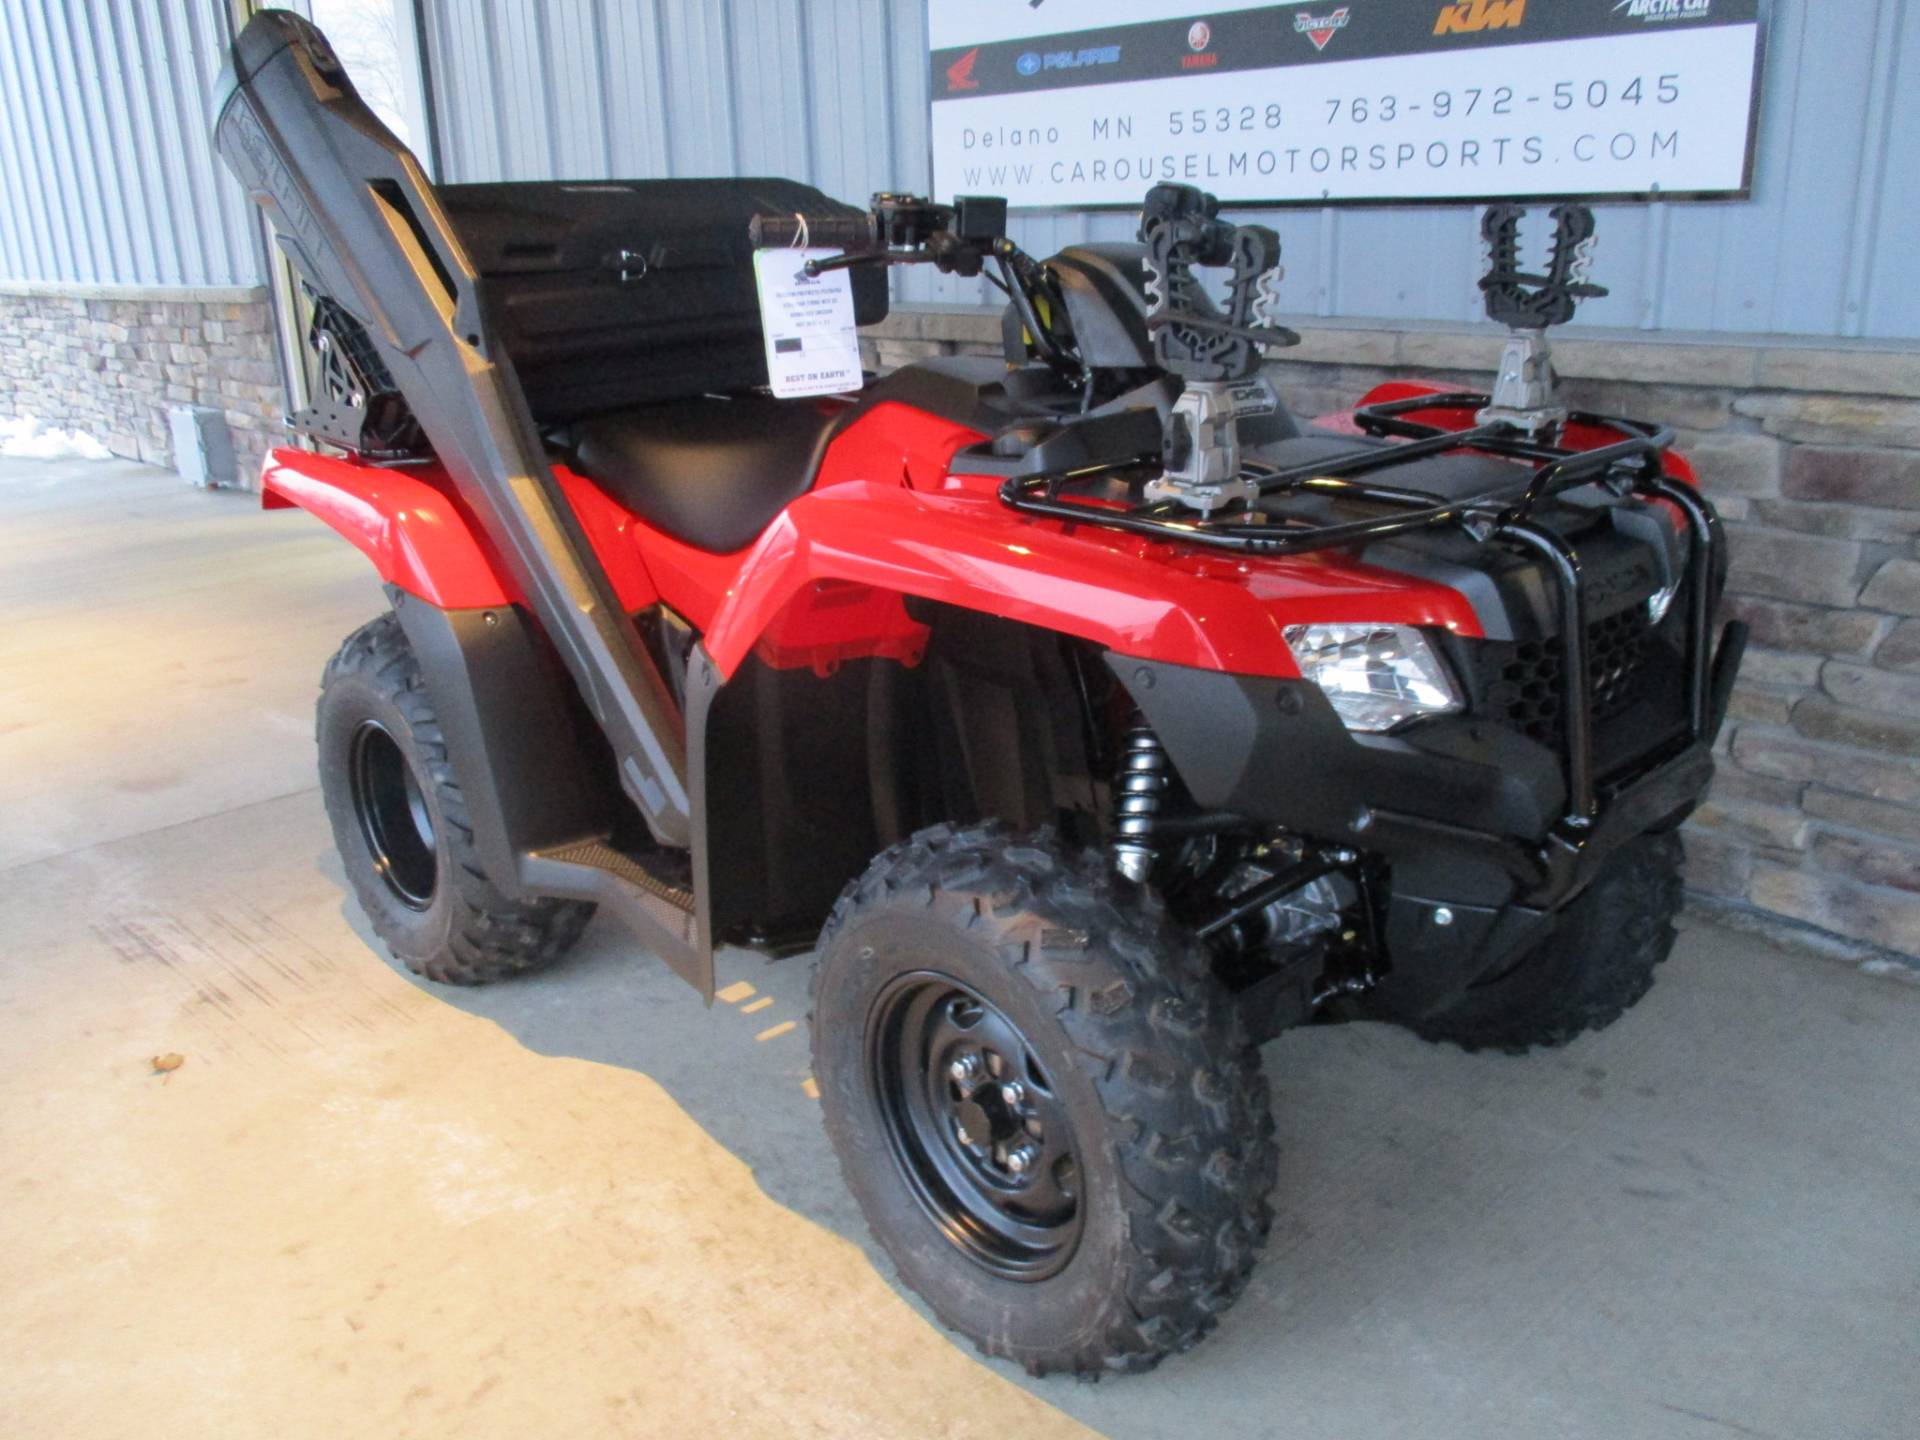 2017 Honda FourTrax Rancher 4x4 ES in Delano, Minnesota